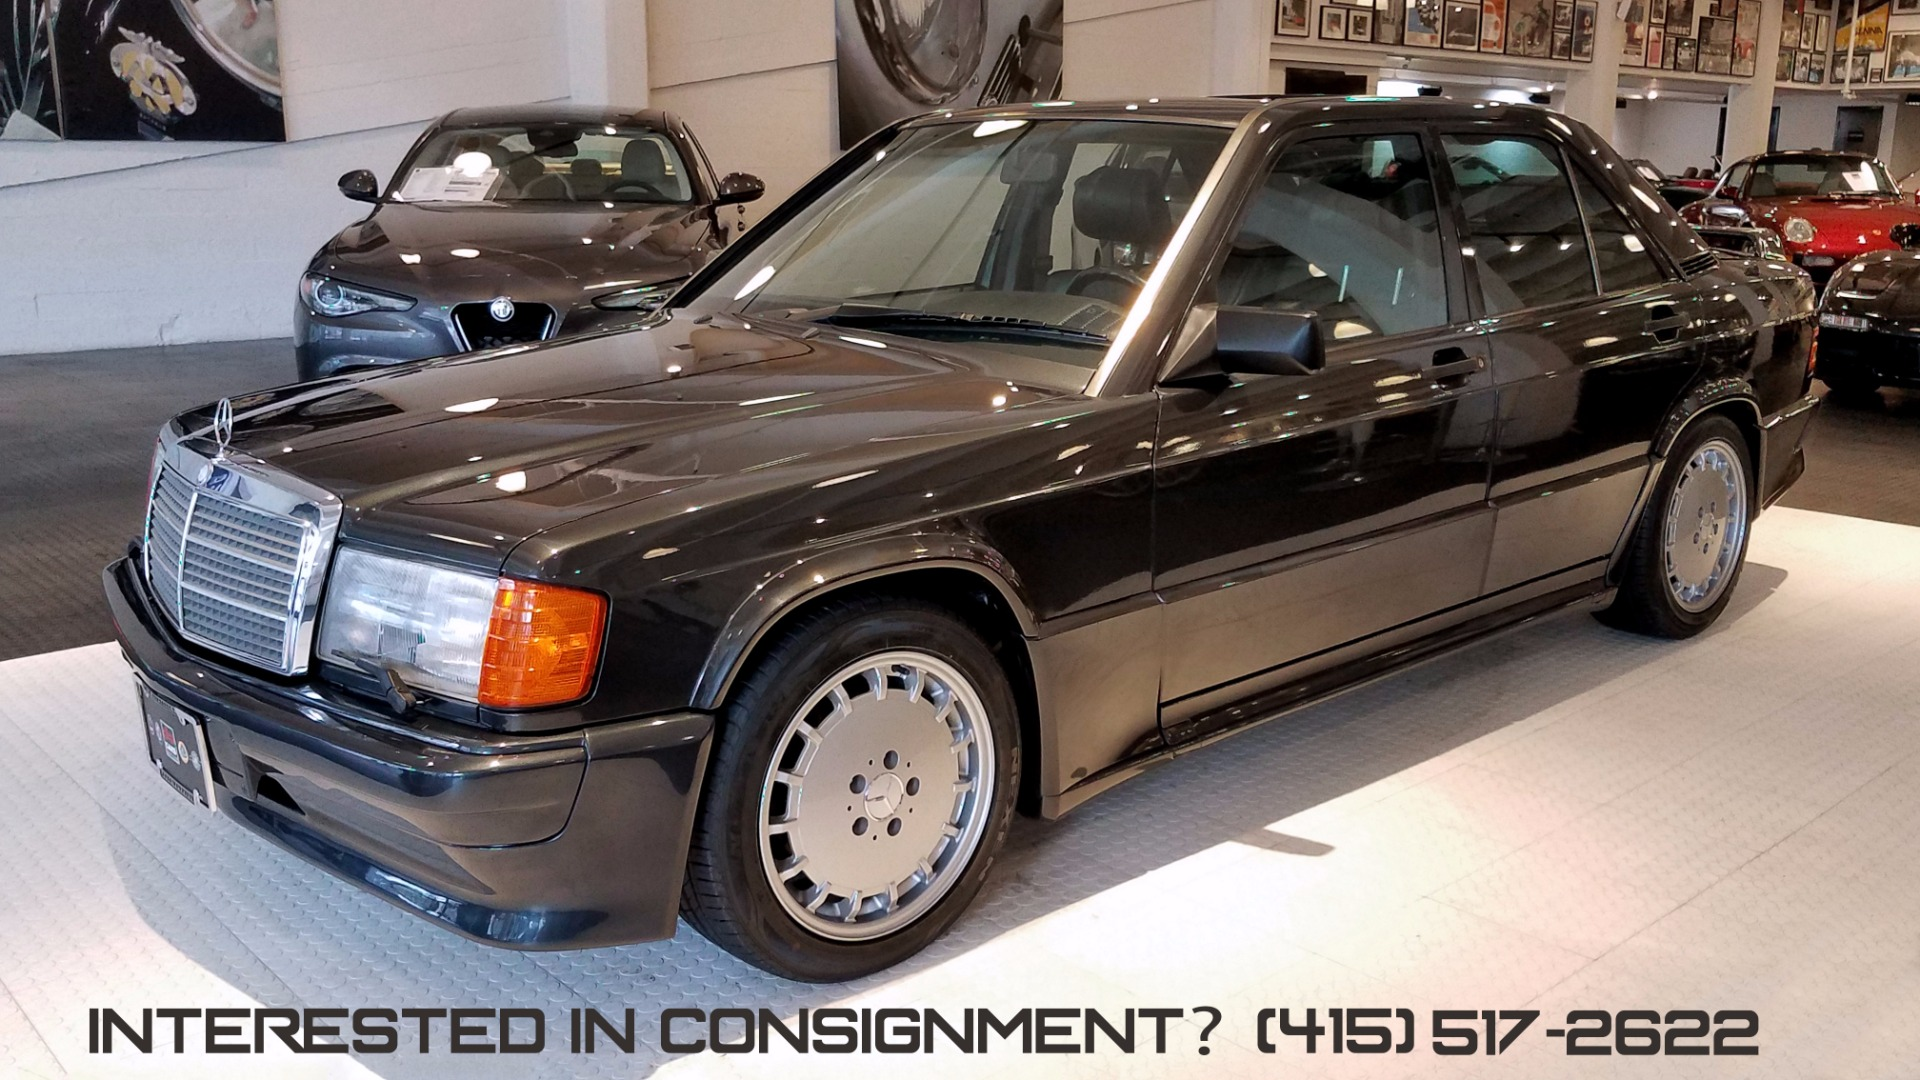 Used 1990 Mercedes Benz 190 E 2.5 16 | San Francisco, CA